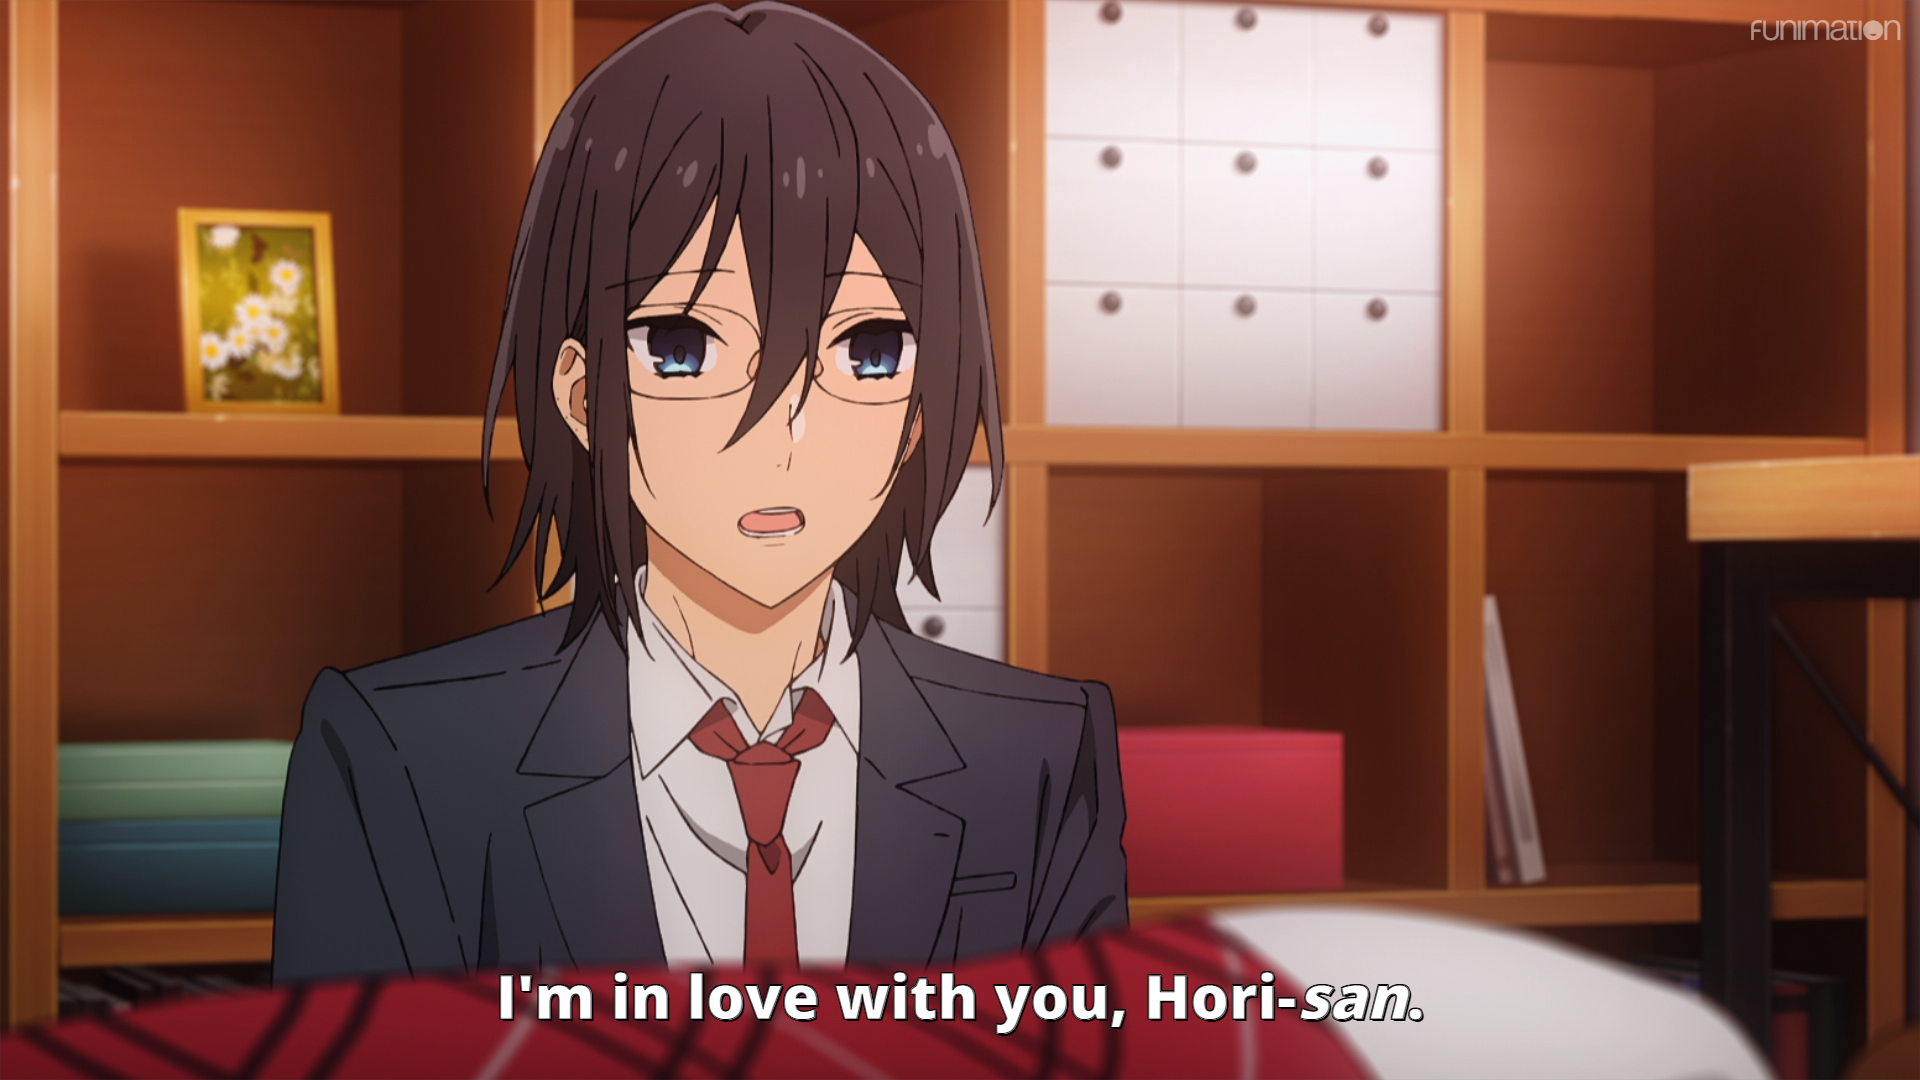 Horimiya Season 1 Episode 4 - I'm in love